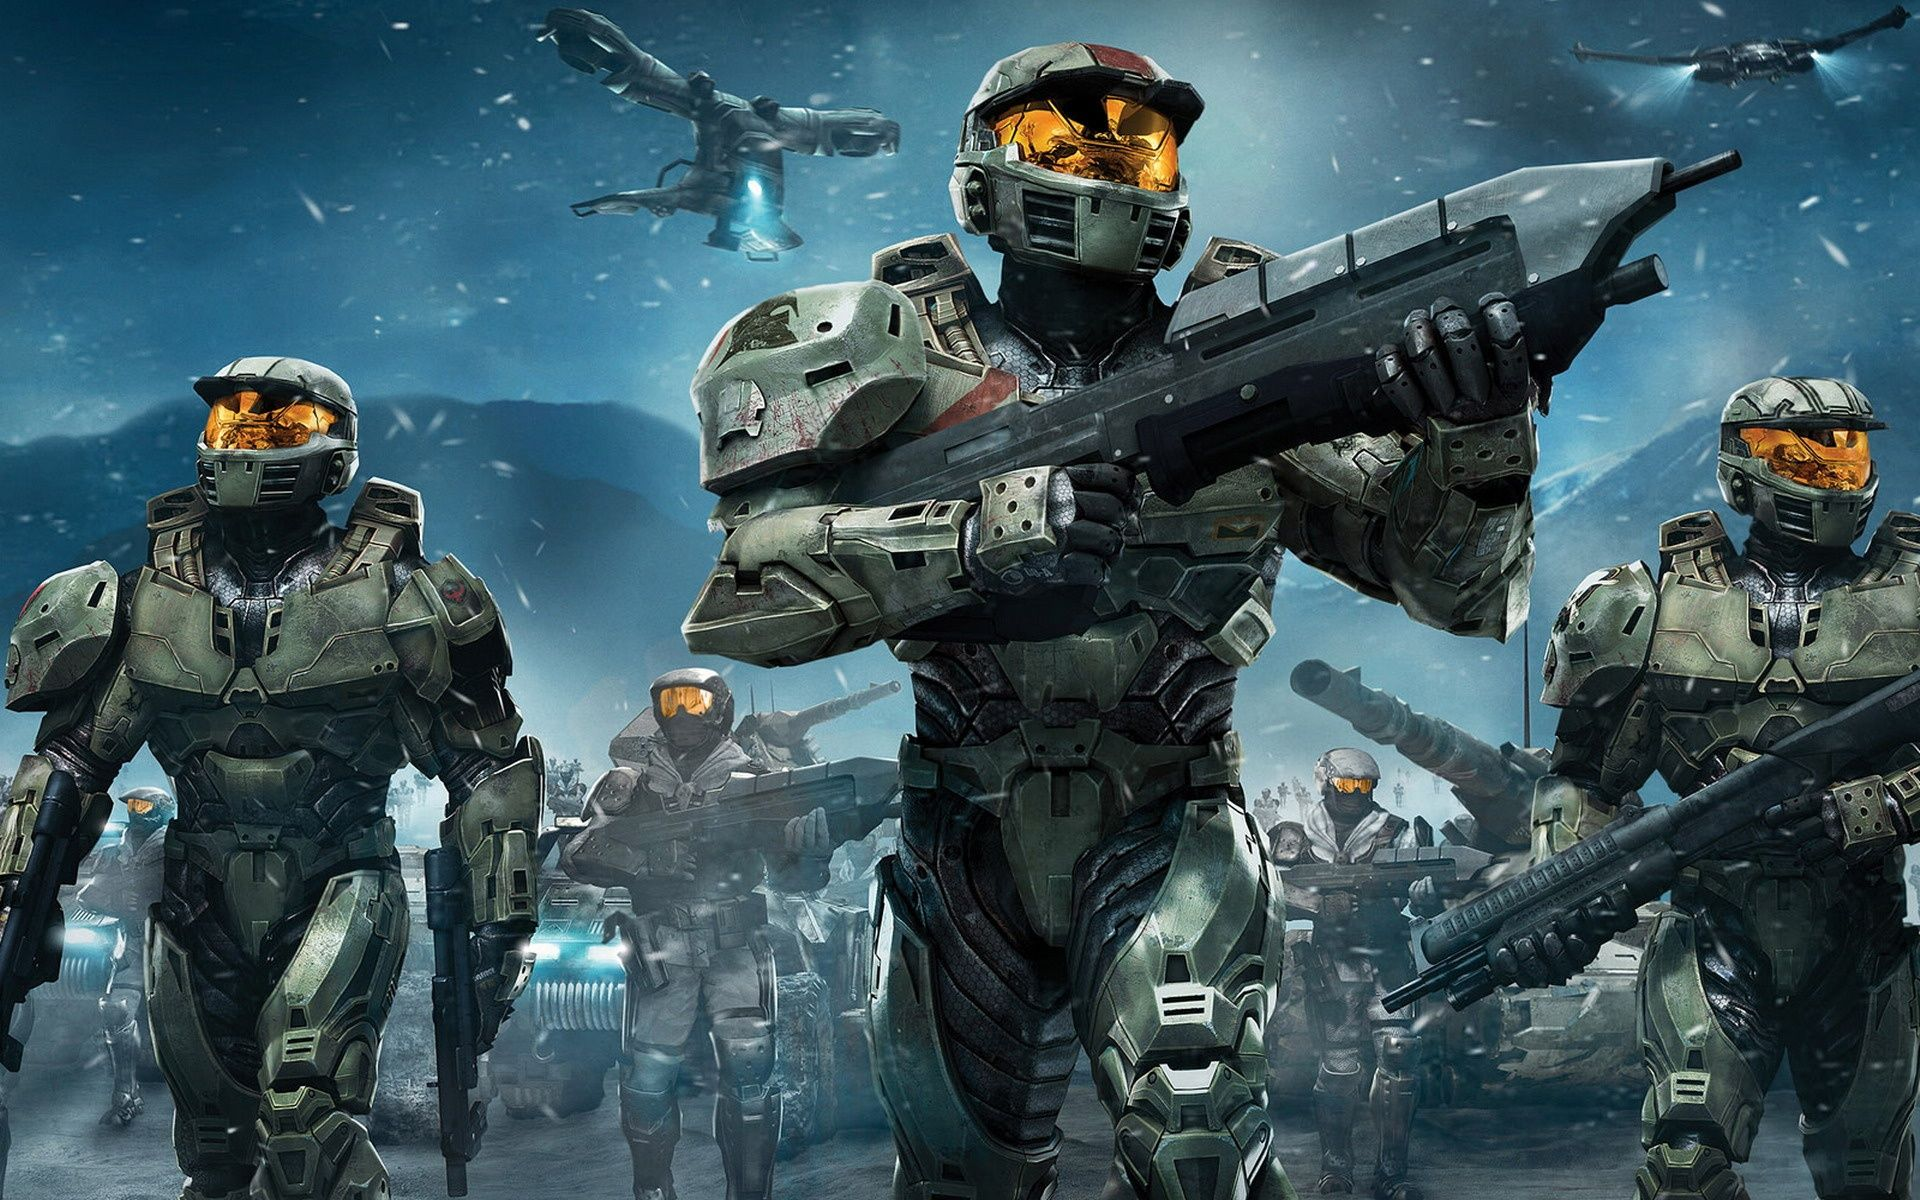 Halo 5 Guardians: trailer, data d'uscita e rumor